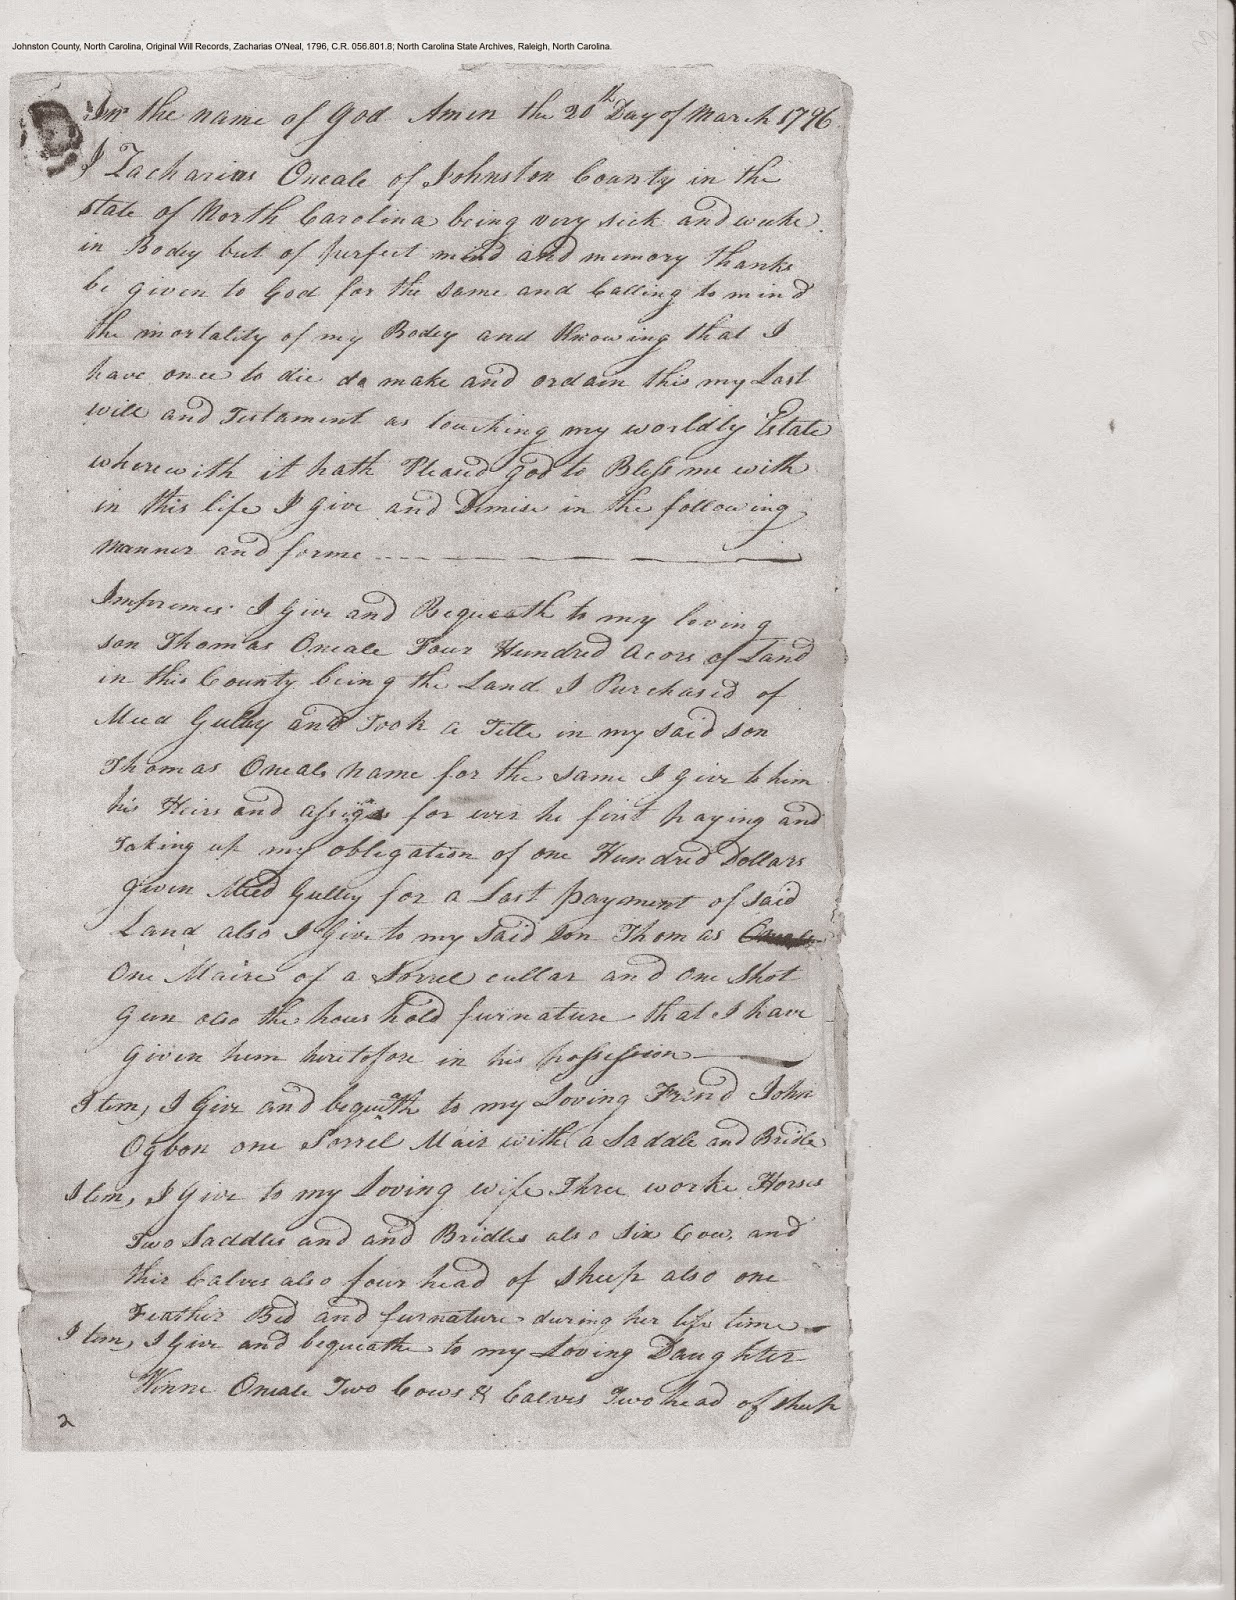 Zachariah O'Neal's will, Johnston Co., NC, 1796, p. 1